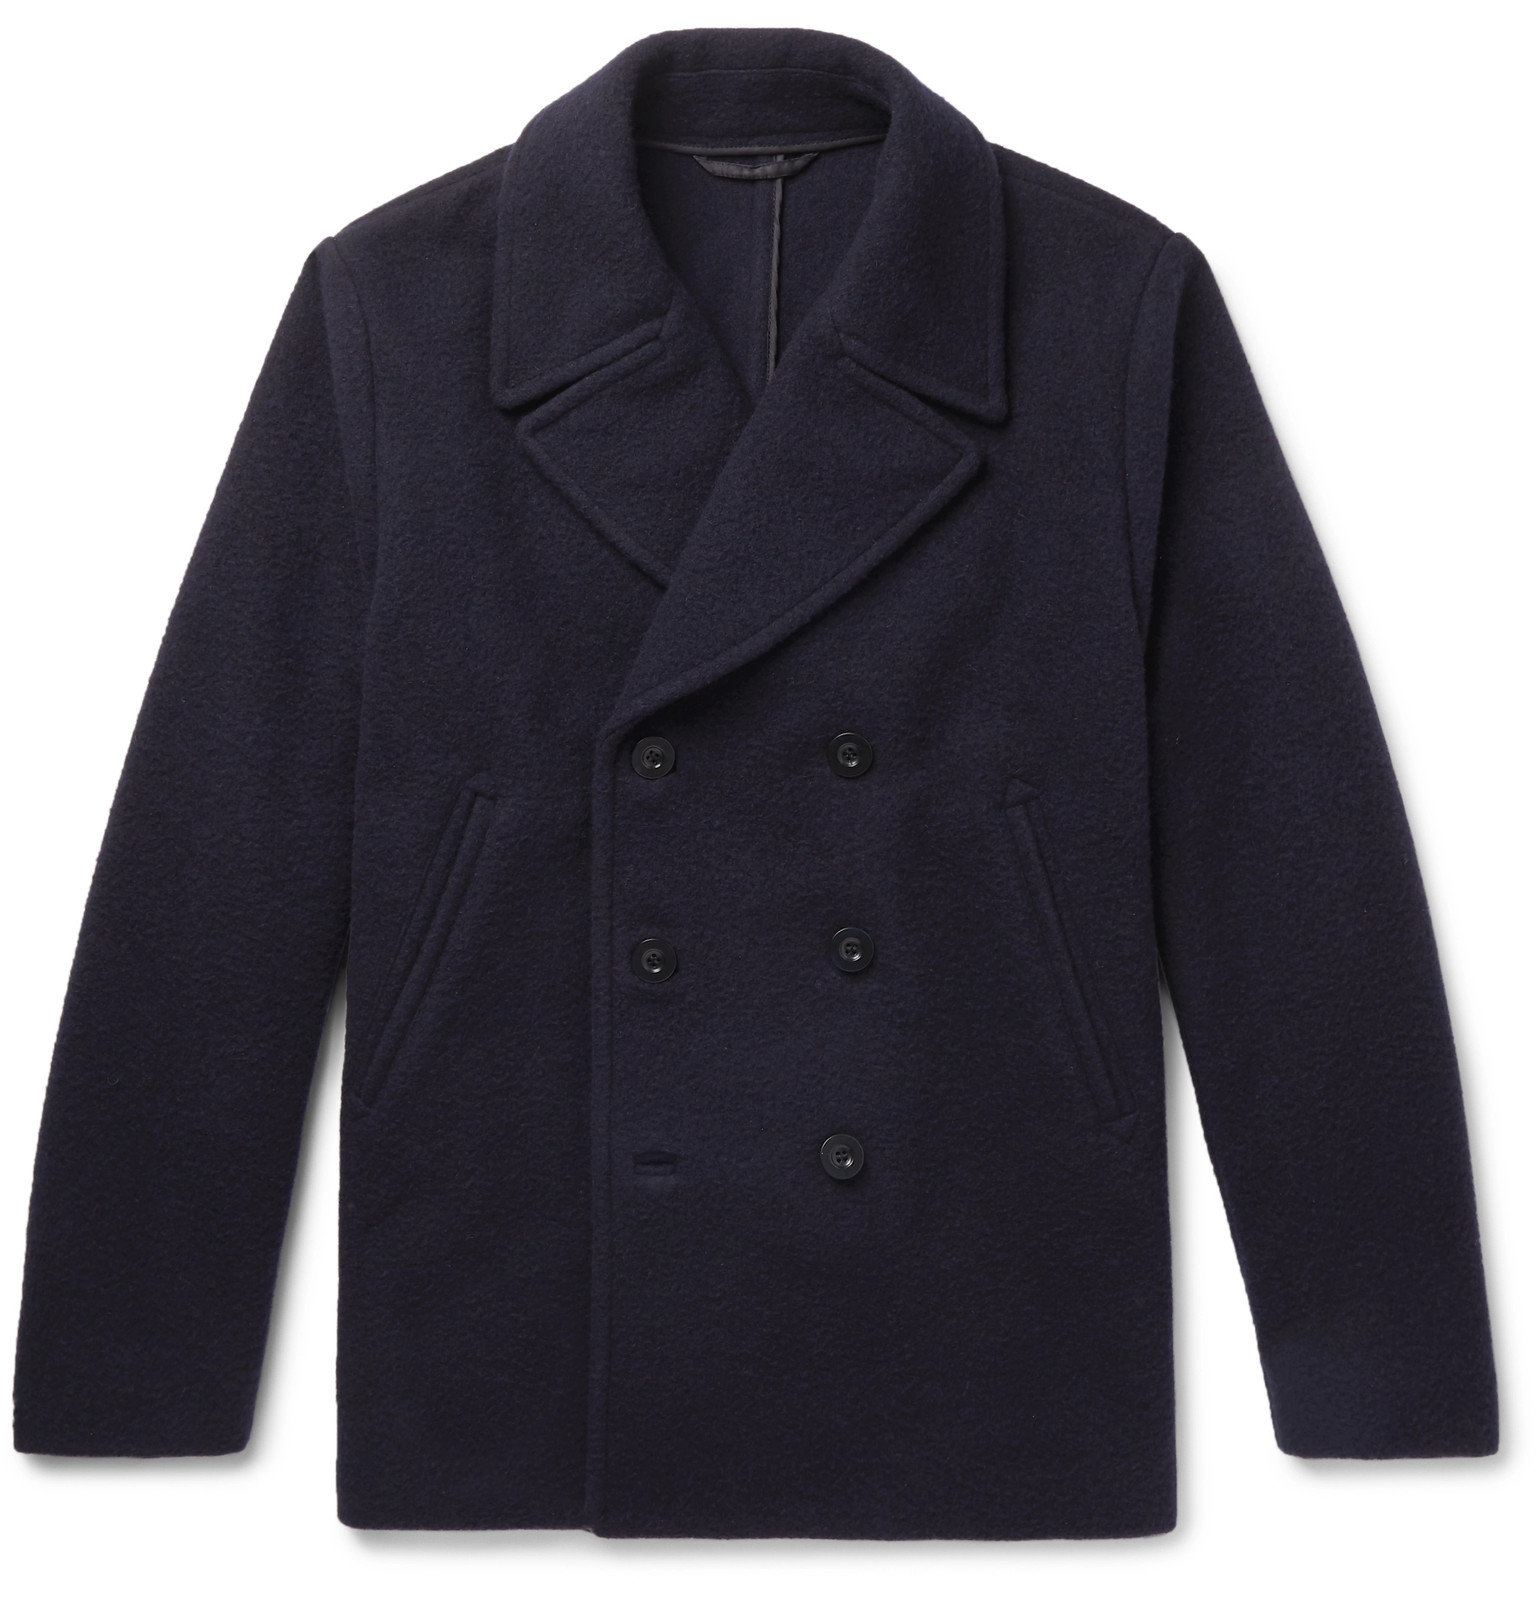 aacb1af989a Mr P.Double-Breasted Virgin Wool and Cashmere-Blend Bouclé Peacoat